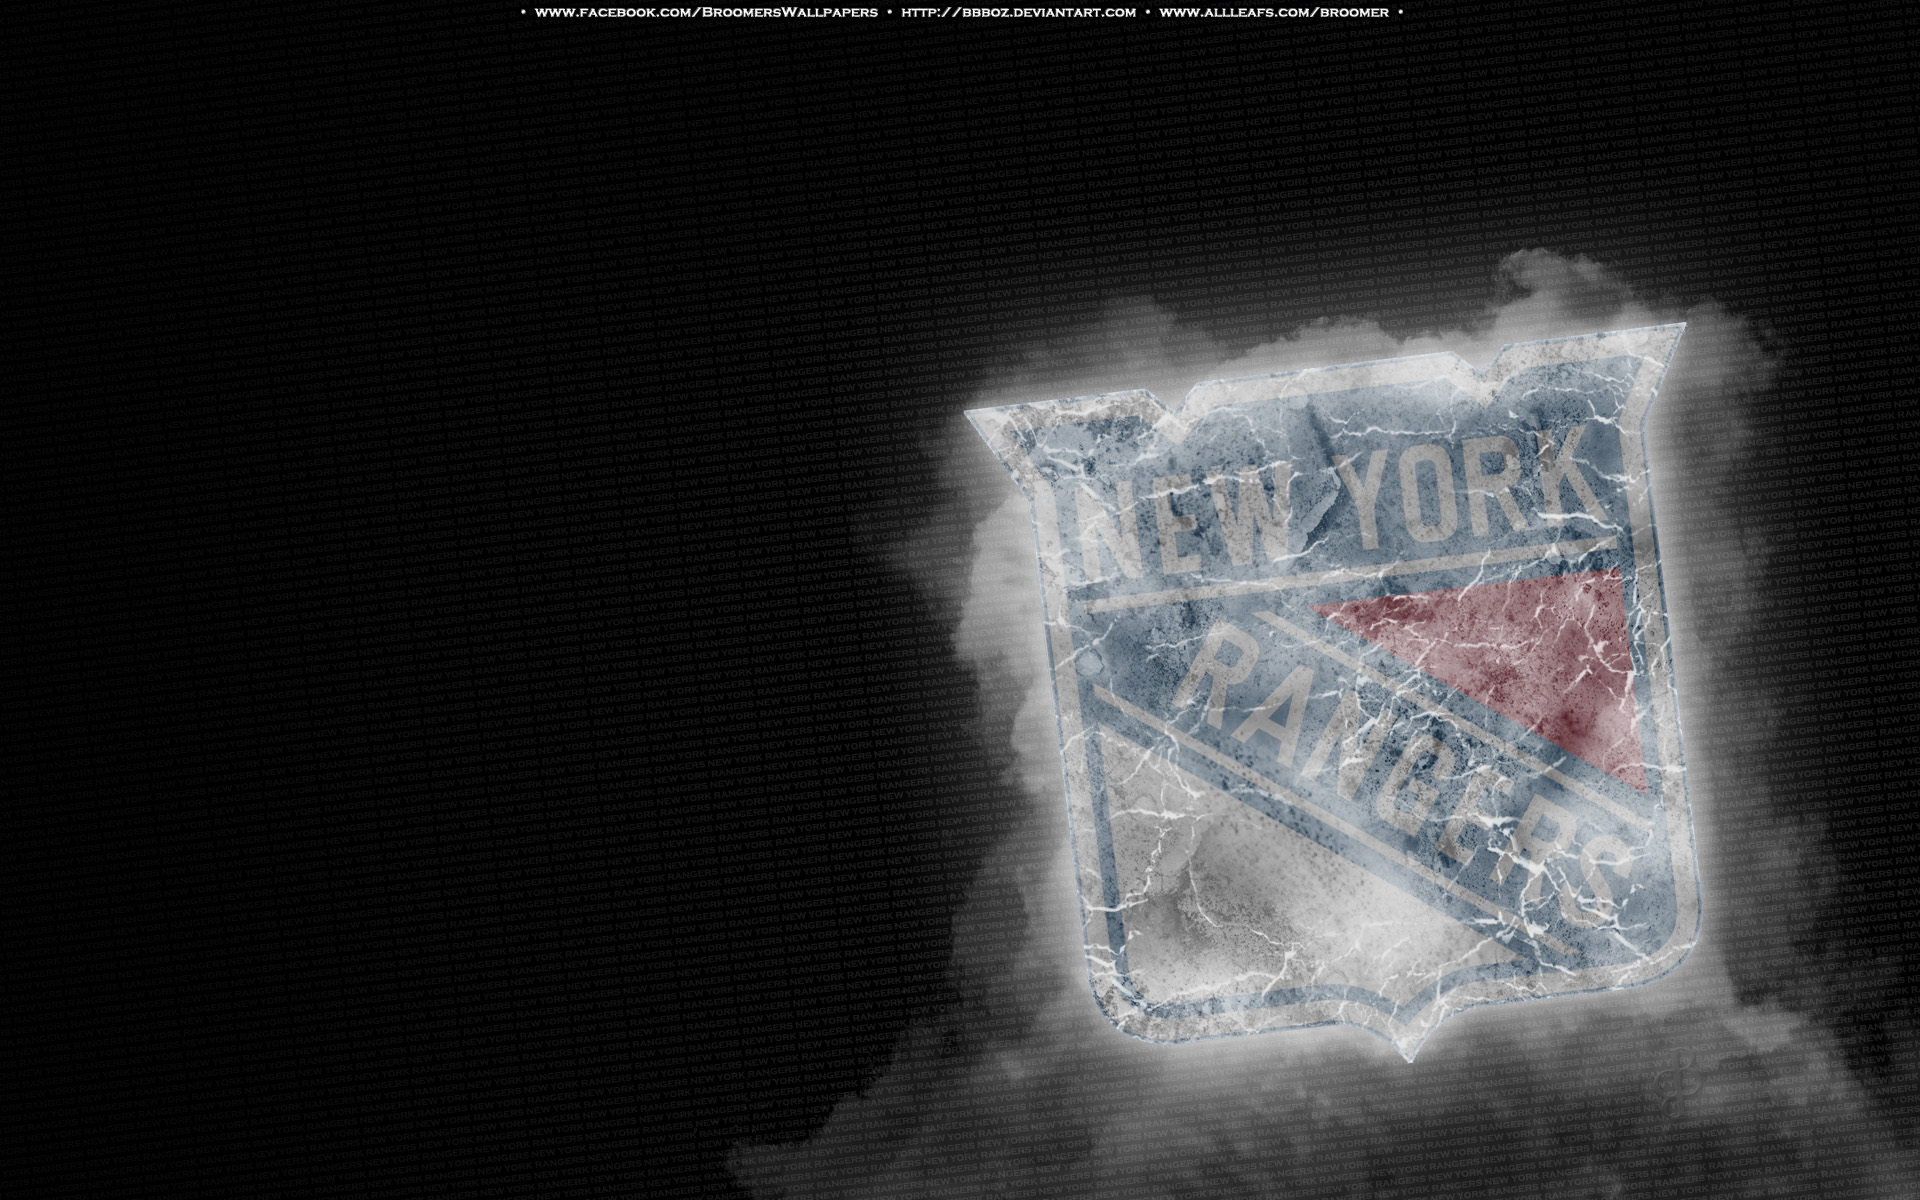 New York Rangers HD Wallpaper | Background Image | 1920x1200 | ID:983369 - Wallpaper Abyss